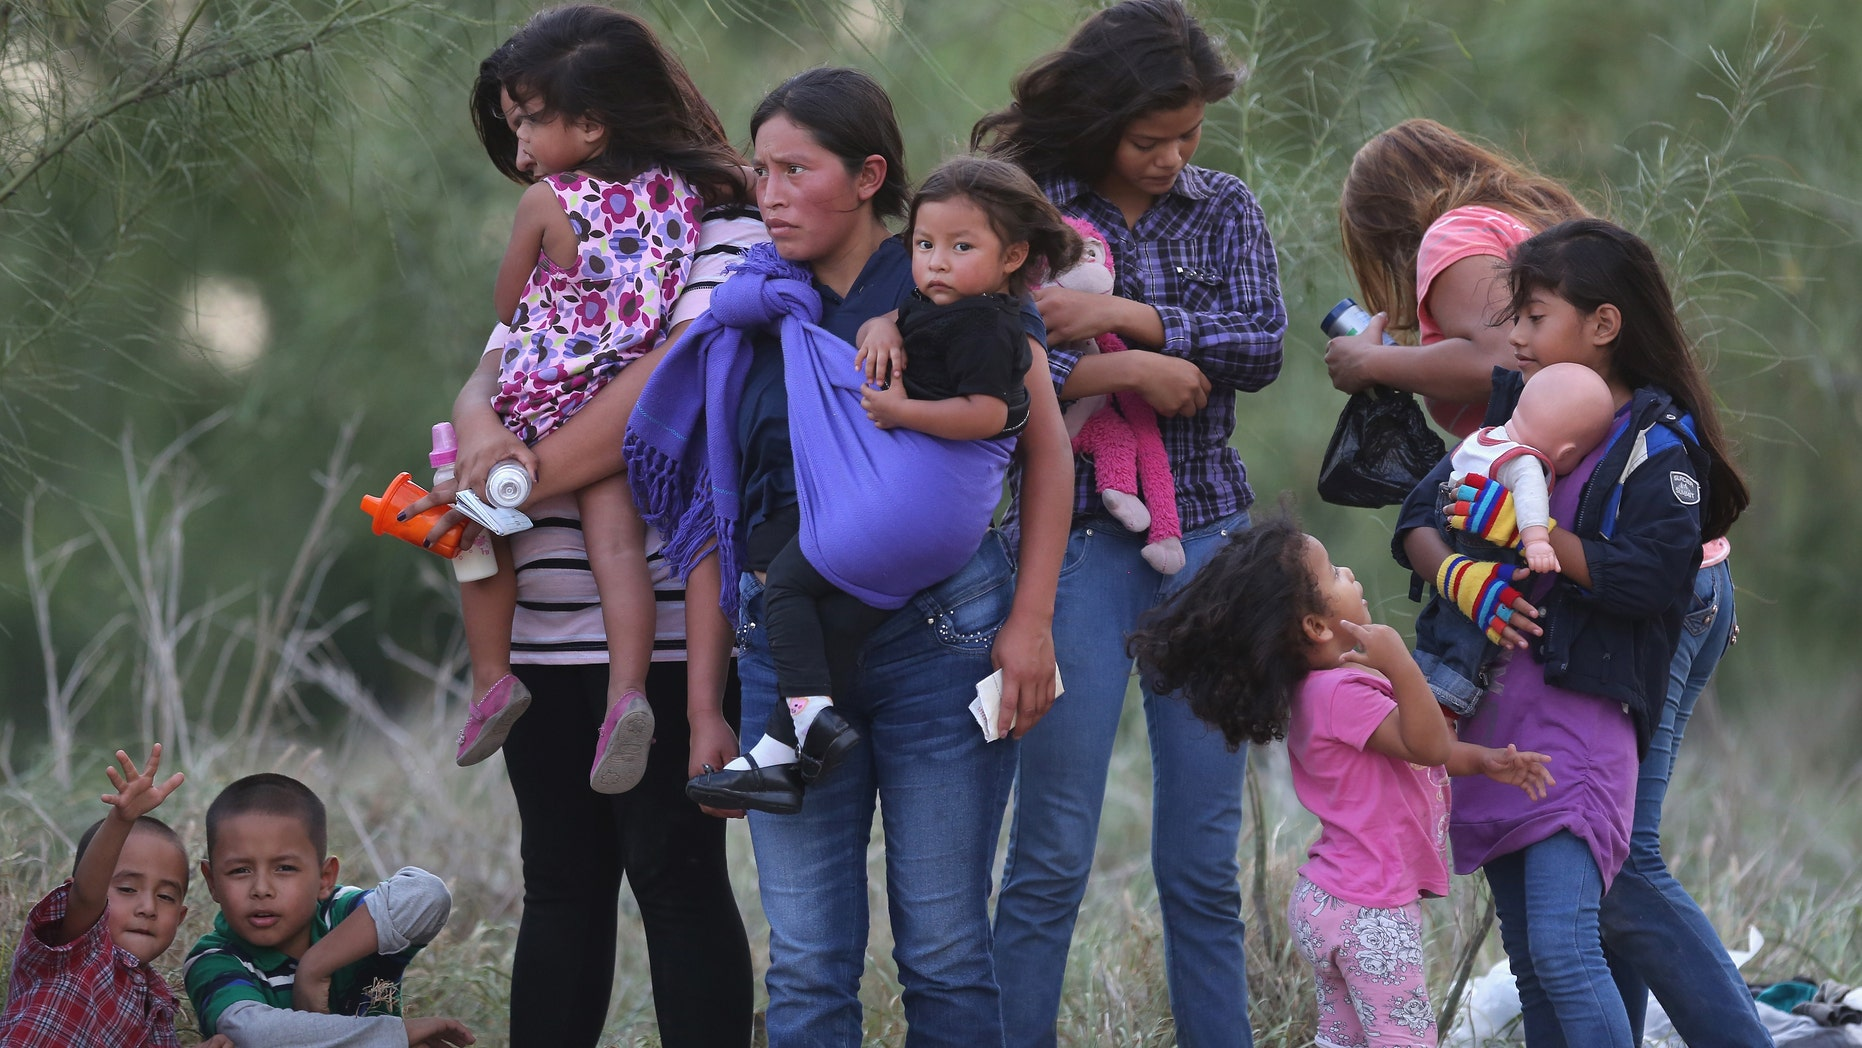 MISSION, TX - JULY 24:  Central American immigrants await transportation to a U.S. Border Patrol processing center after crossing the Rio Grande from Mexico into the Texas on July 24, 2014 near Mission, Texas. Tens of thousands of undocumented immigrants, many of them families or unaccompanied minors, have crossed illegally into the United States this year and presented themselves to federal agents, causing a humanitarian crisis on the U.S.-Mexico border. The Rio Grande Sector of the border has the heaviest traffic of illegal crossings of the entire U.S.-Mexico border.  (Photo by John Moore/Getty Images)